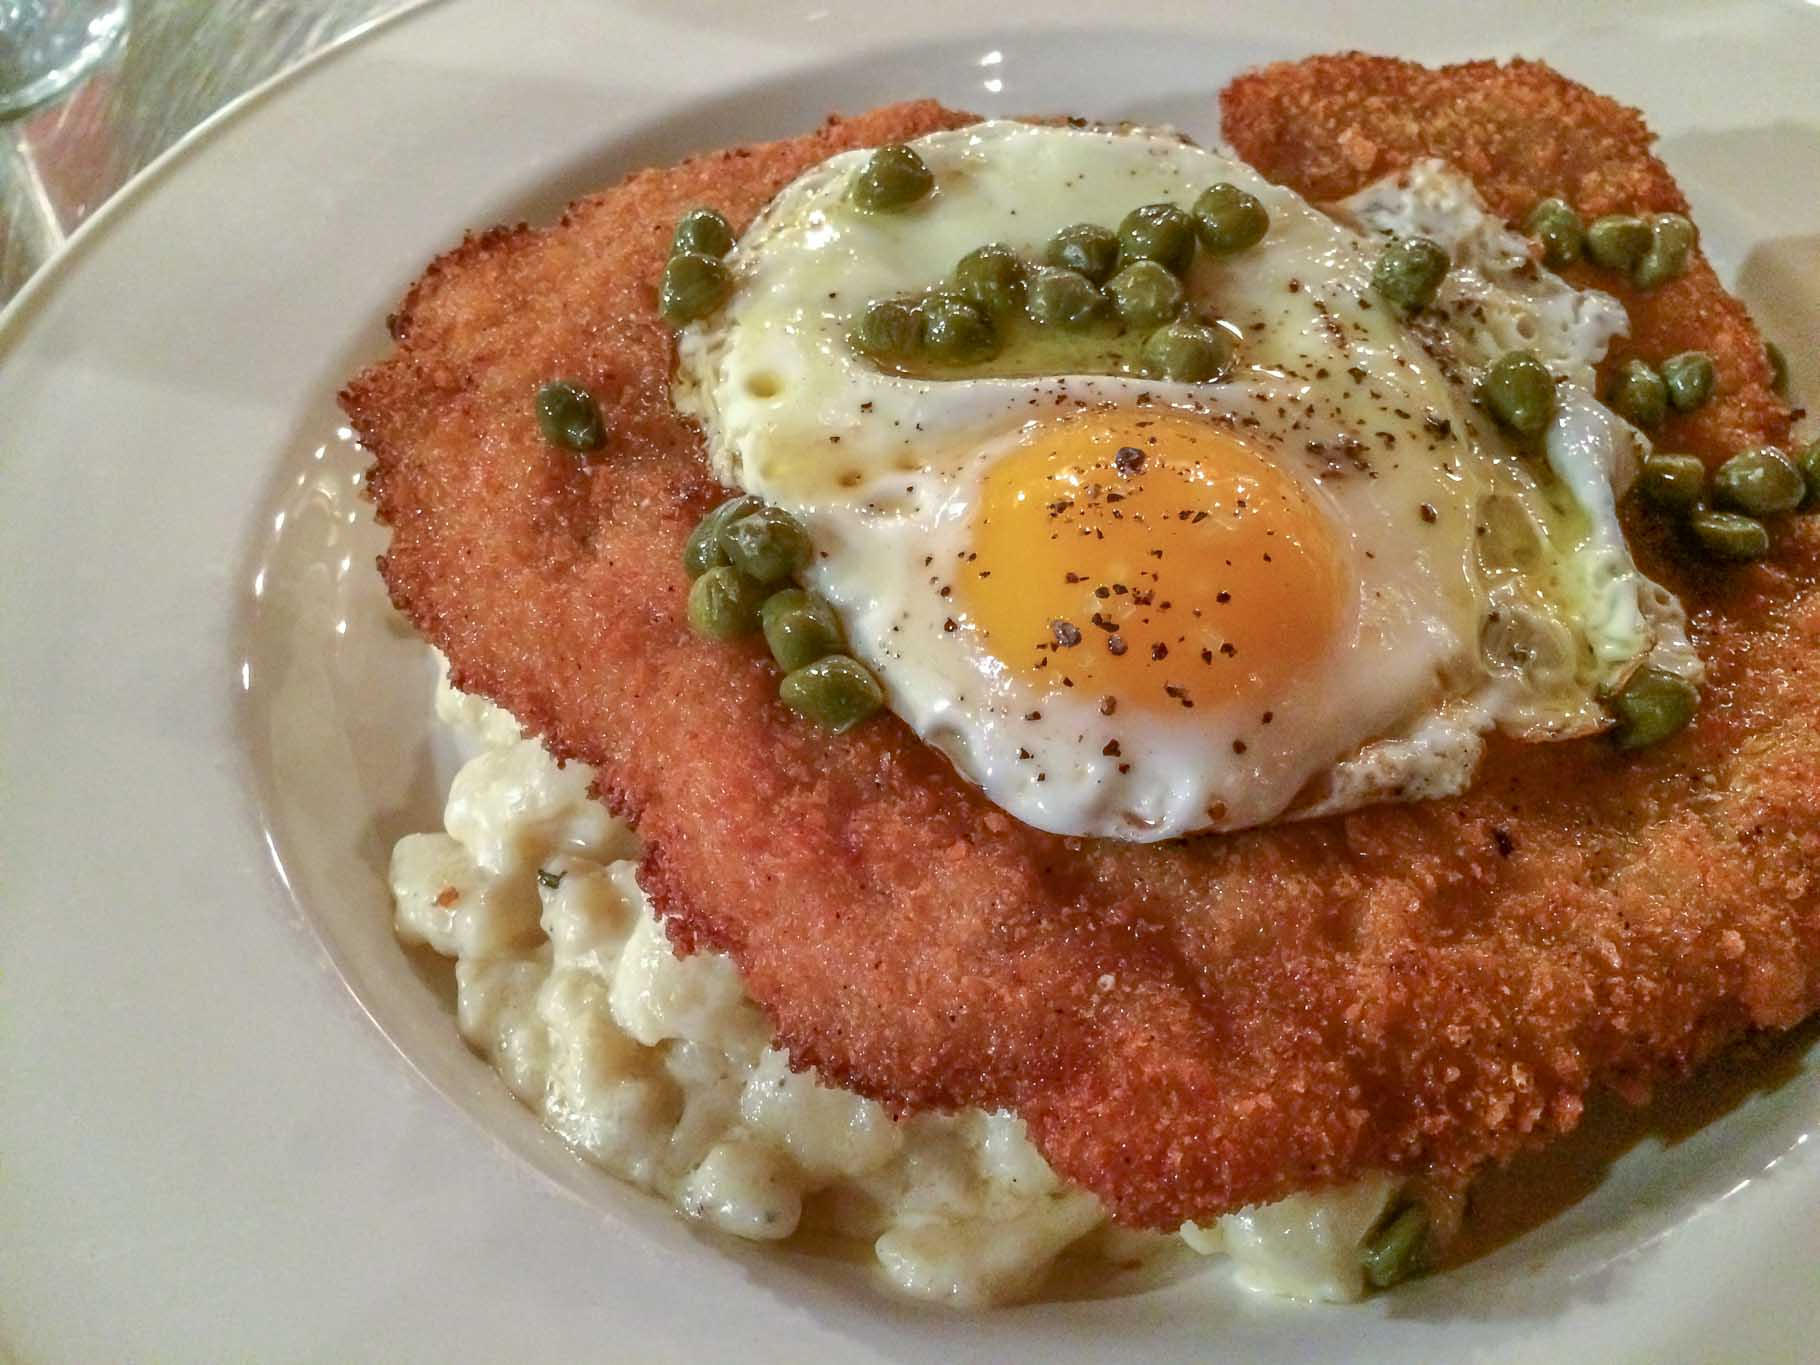 Schnitzel topped with a fried egg and capers on a plate